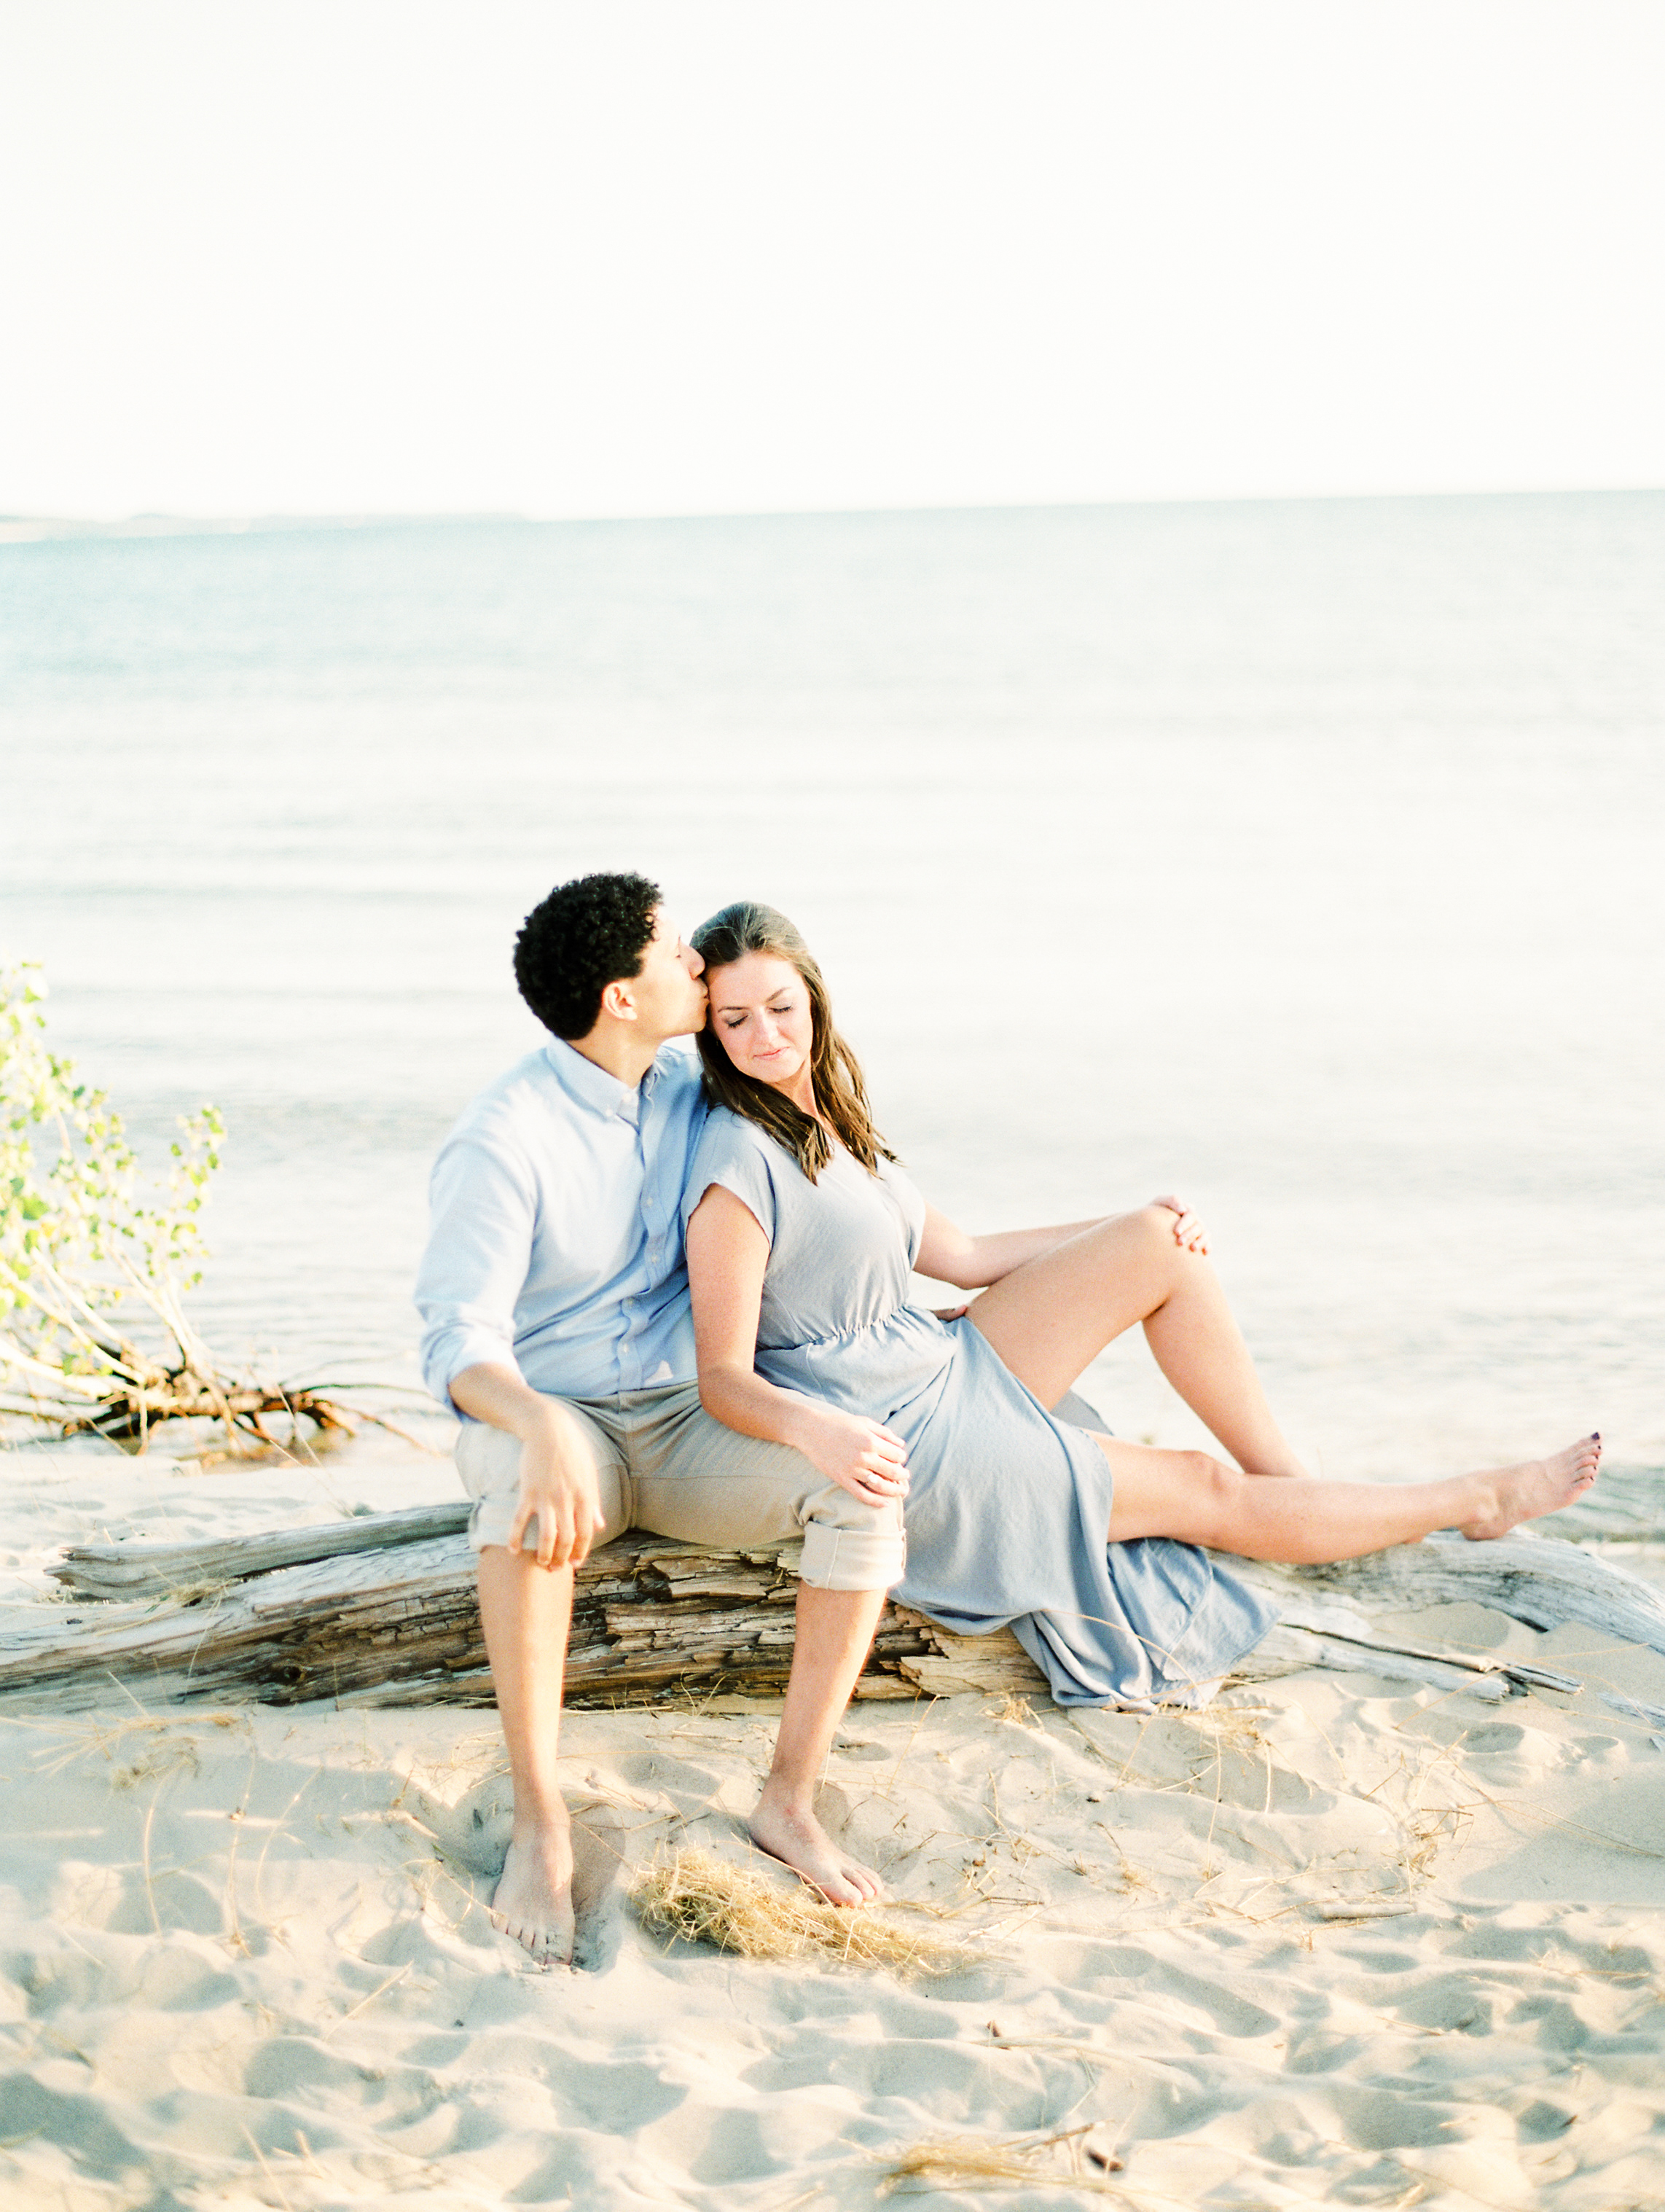 Lucie+Anthony+Engaged-45.jpg